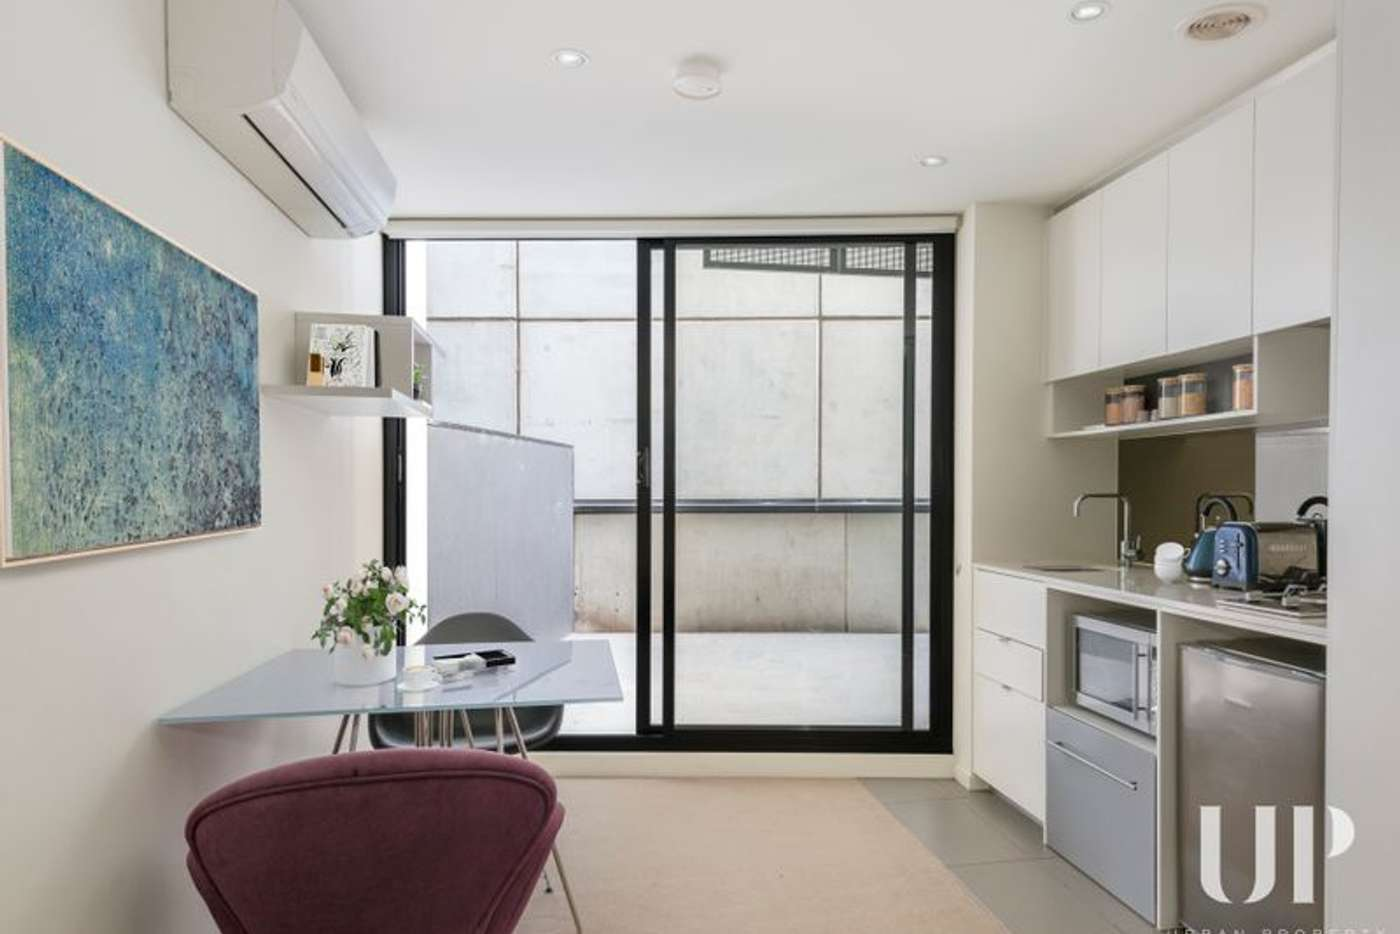 Fifth view of Homely apartment listing, 1602/243 Franklin Street, Melbourne VIC 3000